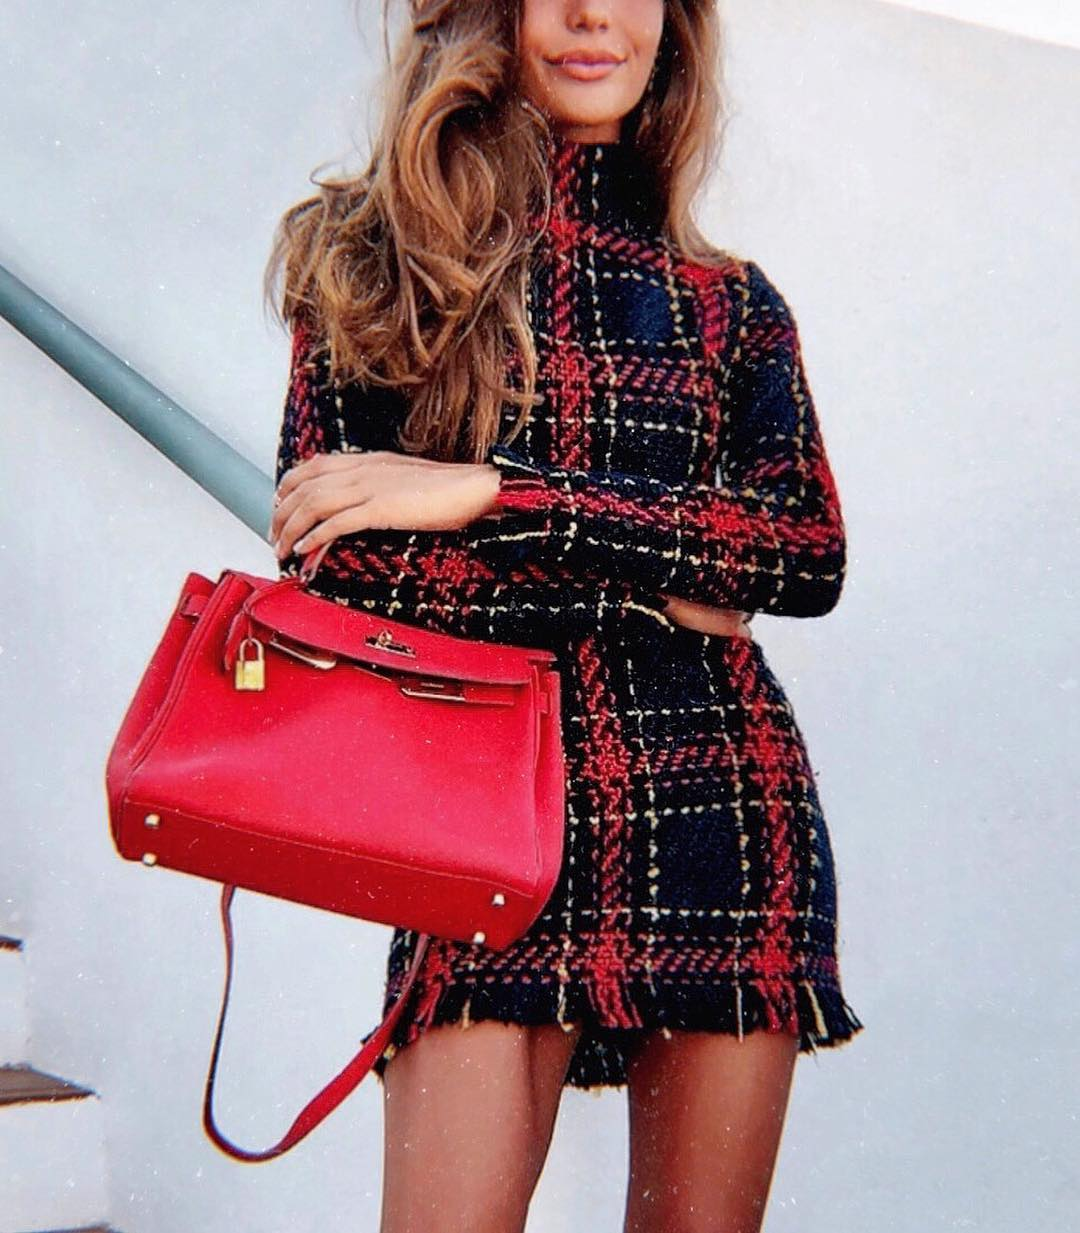 Plaid Sweater Dress And Red Leather Bag For Casual Friday 2019